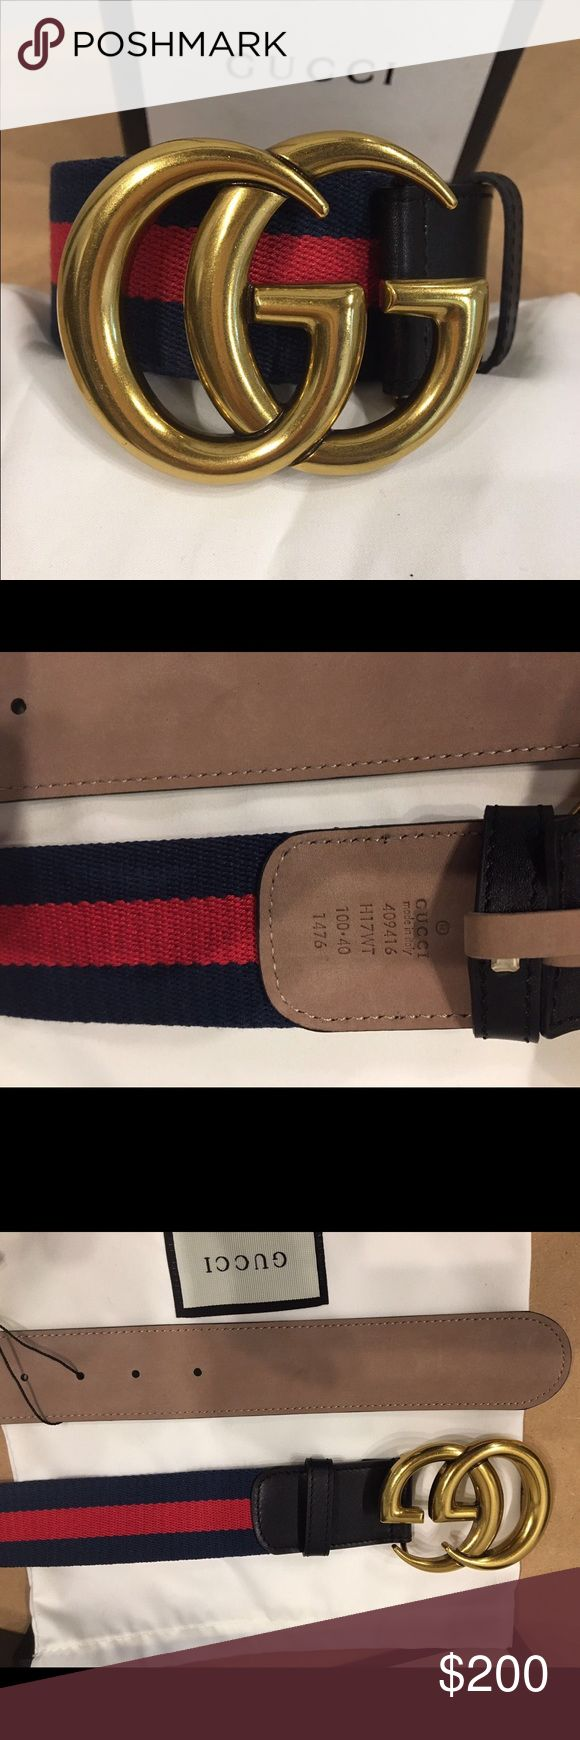 Brand new Gucci belt black green/red/green Brand new Gucci black green/red belt with double gold buckle.                                                     Comes with box,tags and dust bag 😍😍.             ( Unisex ) Gucci Accessories Belts